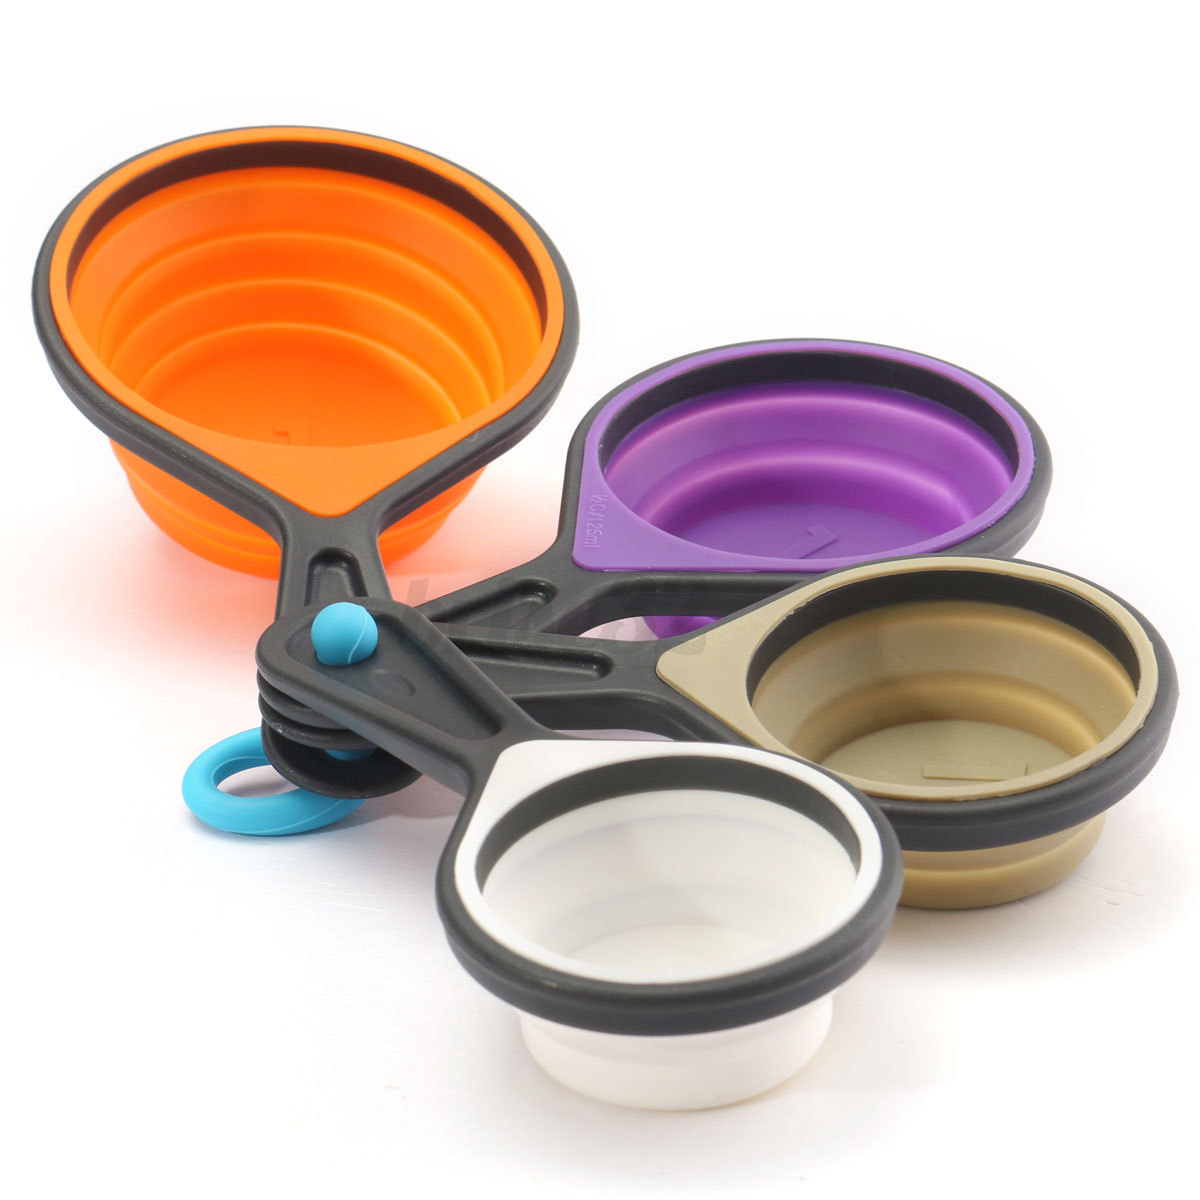 4 8pcs Silicone Measuring Cups Spoon Collapsible Kitchen